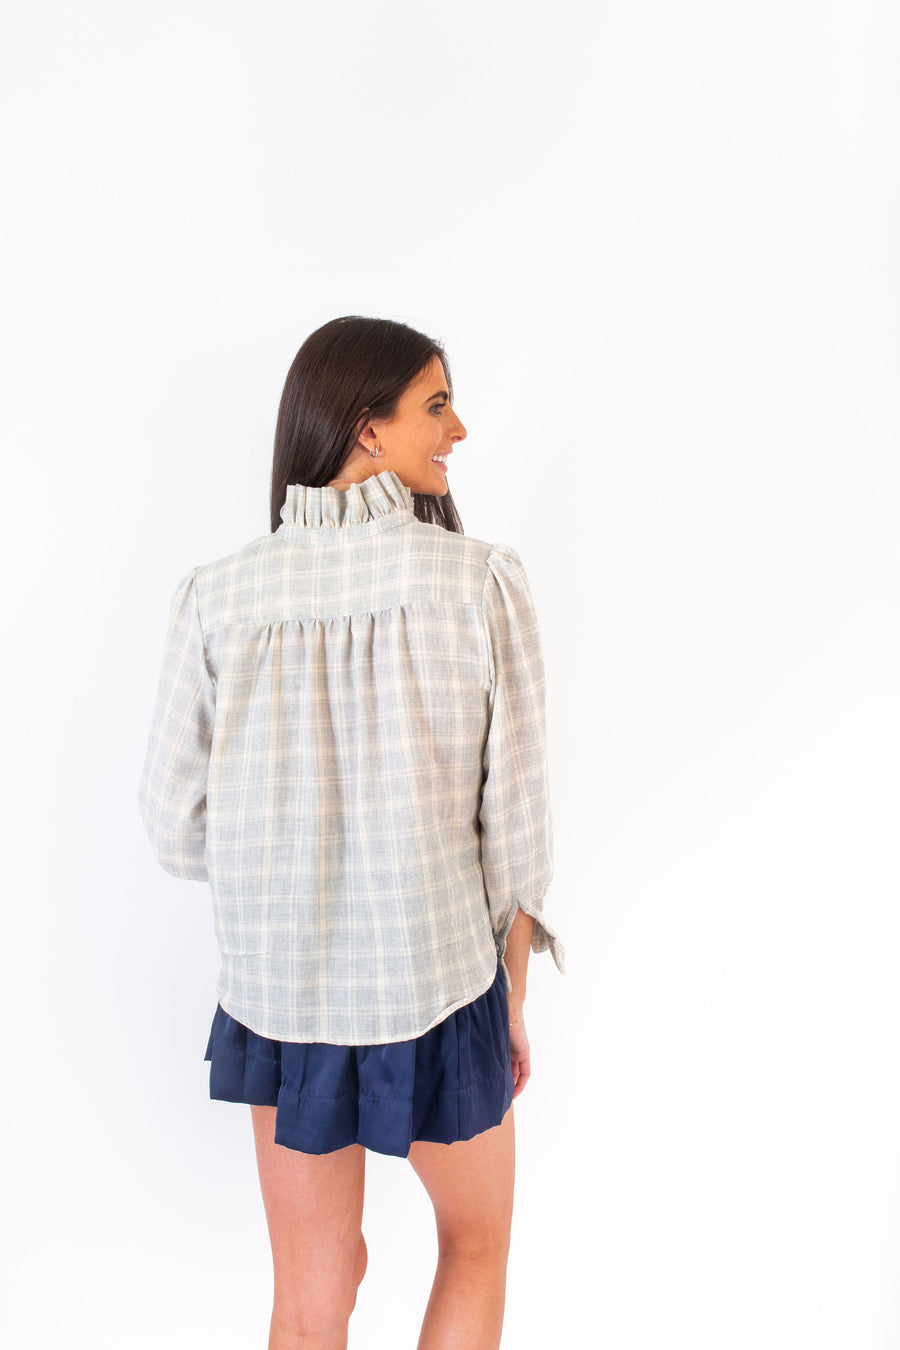 PHOEBE TOP GREY PLAID *LIMITED*EDITION*